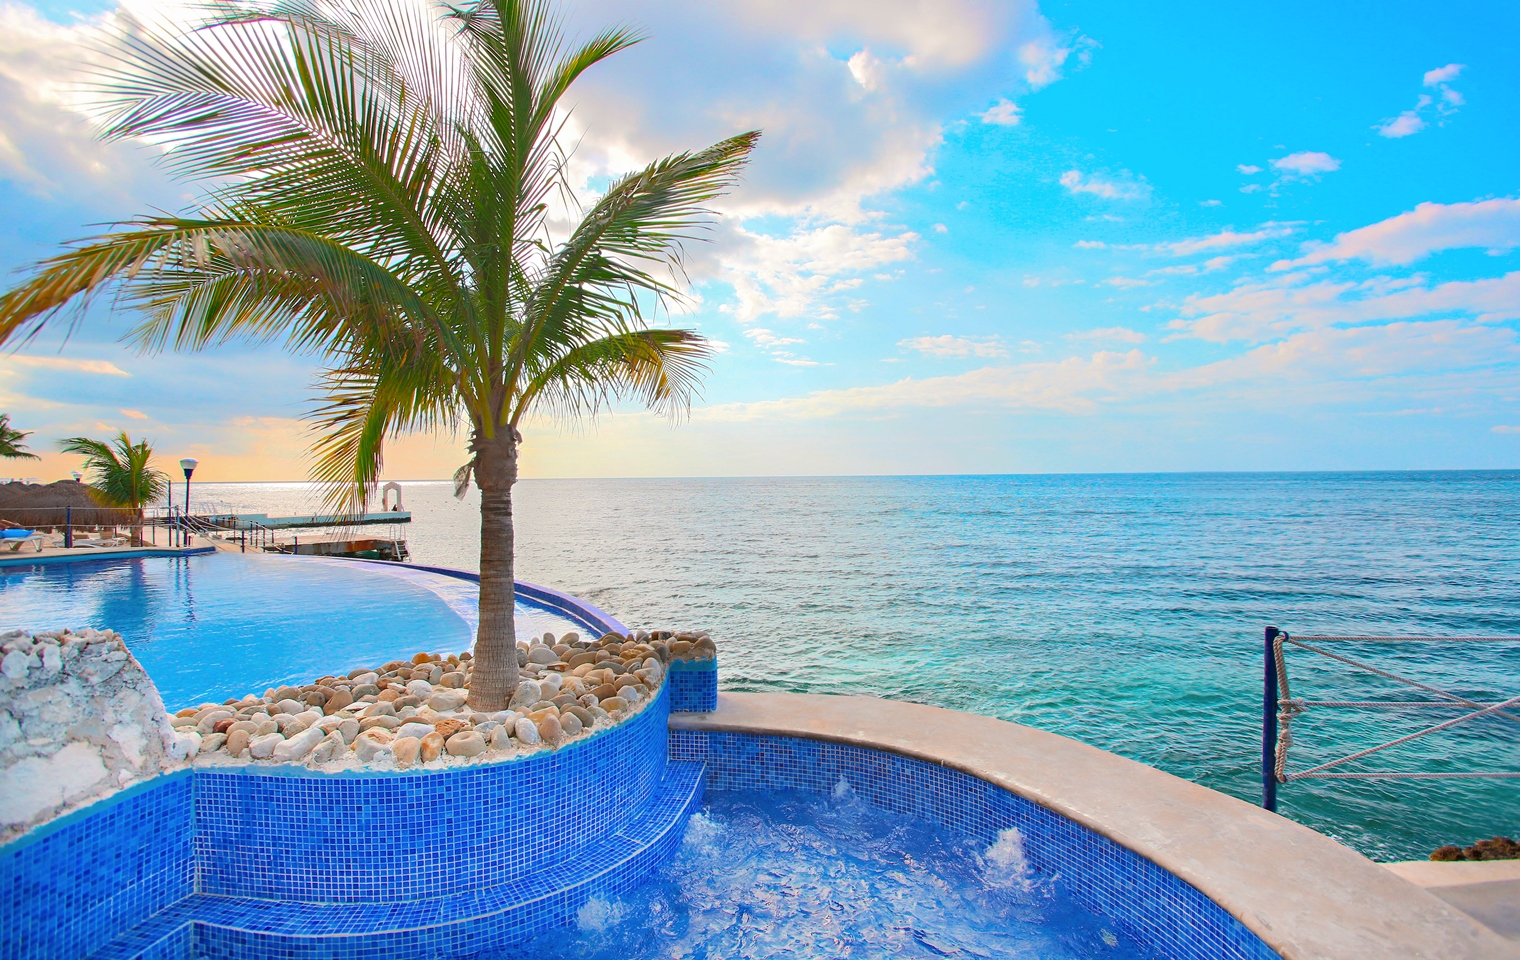 reviews buying cozumel real estate with Karen